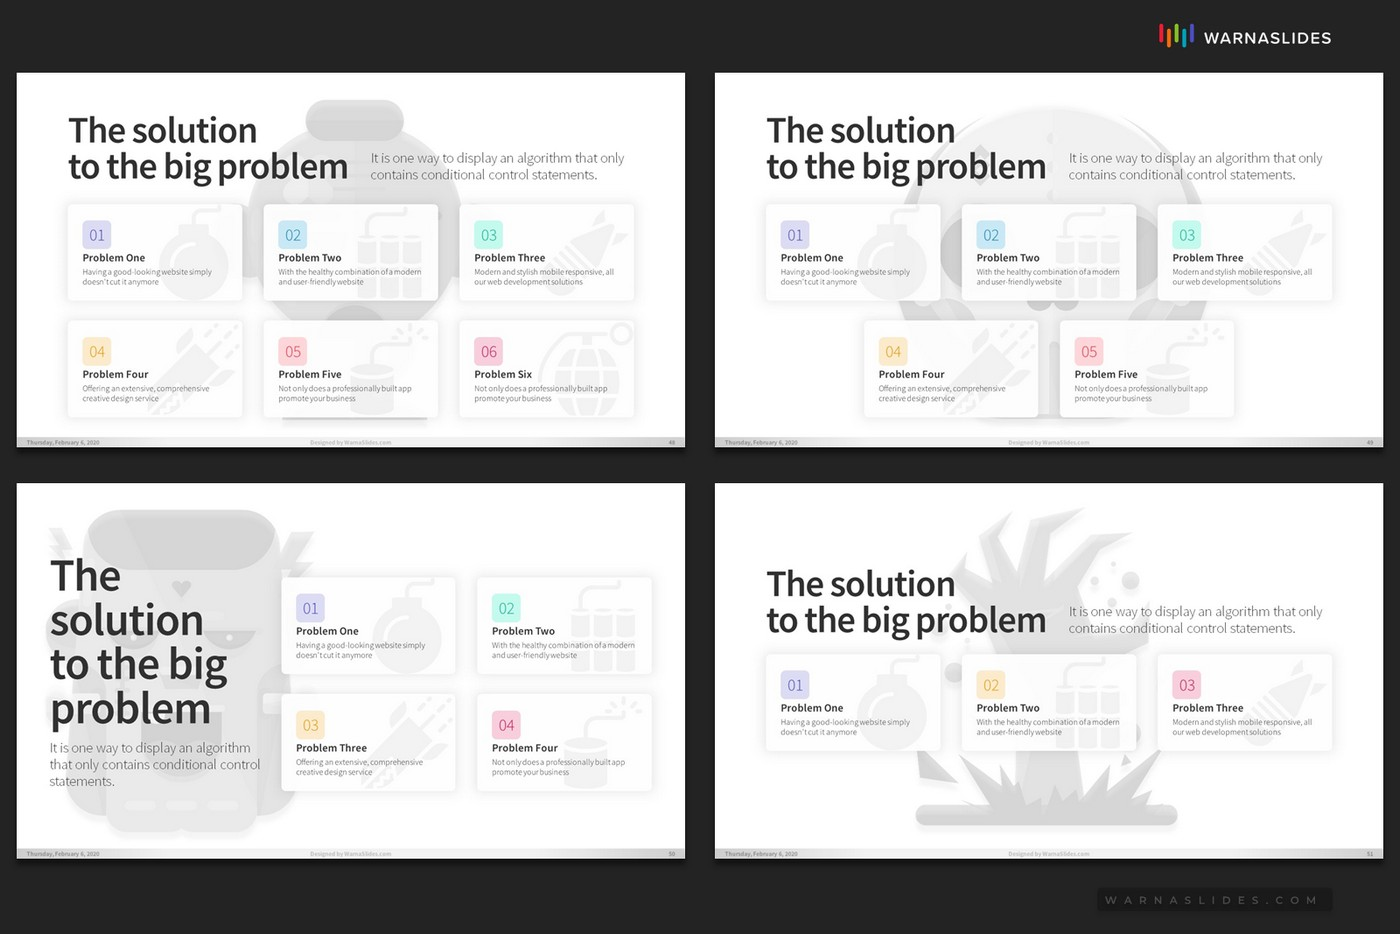 Problem-Threats-Risk-Management-Weaknesses-Services-Brainstorm-PowerPoint-Template-2020-for-Business-Pitch-Deck-Professional-Creative-Presentation-by-Warna-Slides-016